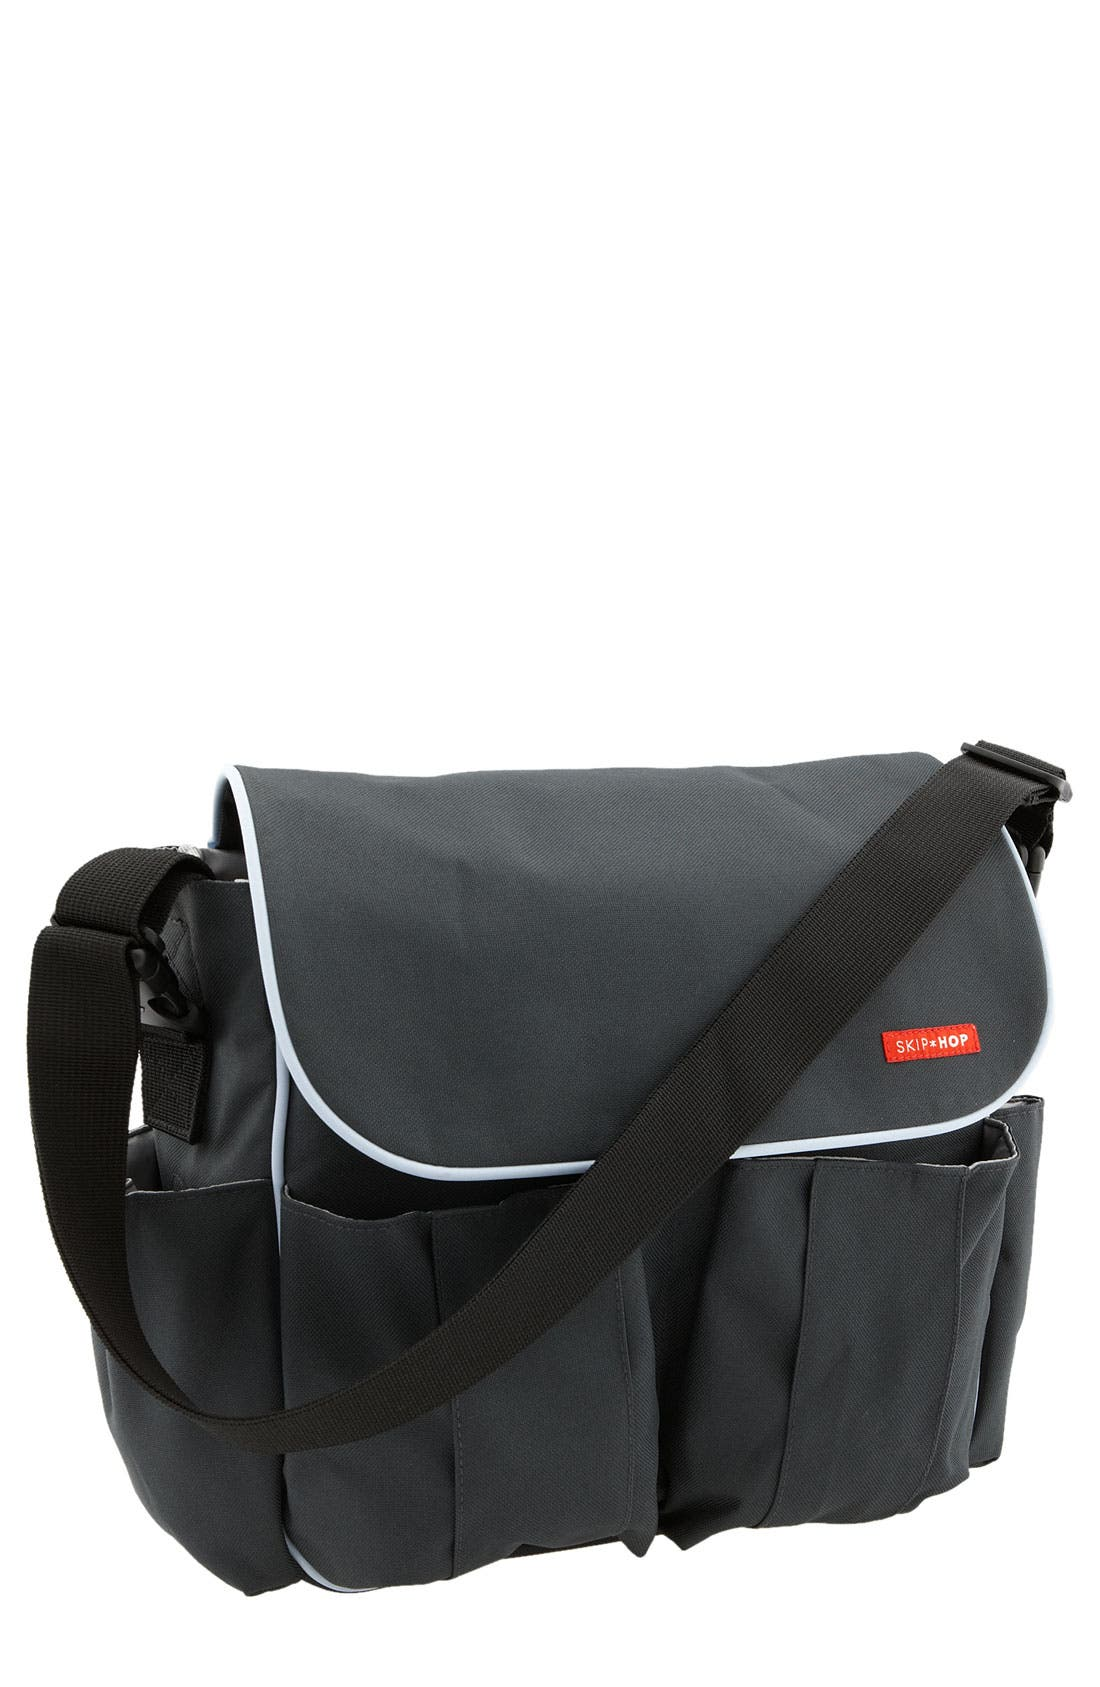 Main Image - Skip Hop 'Dash' Diaper Bag (Deluxe Edition)